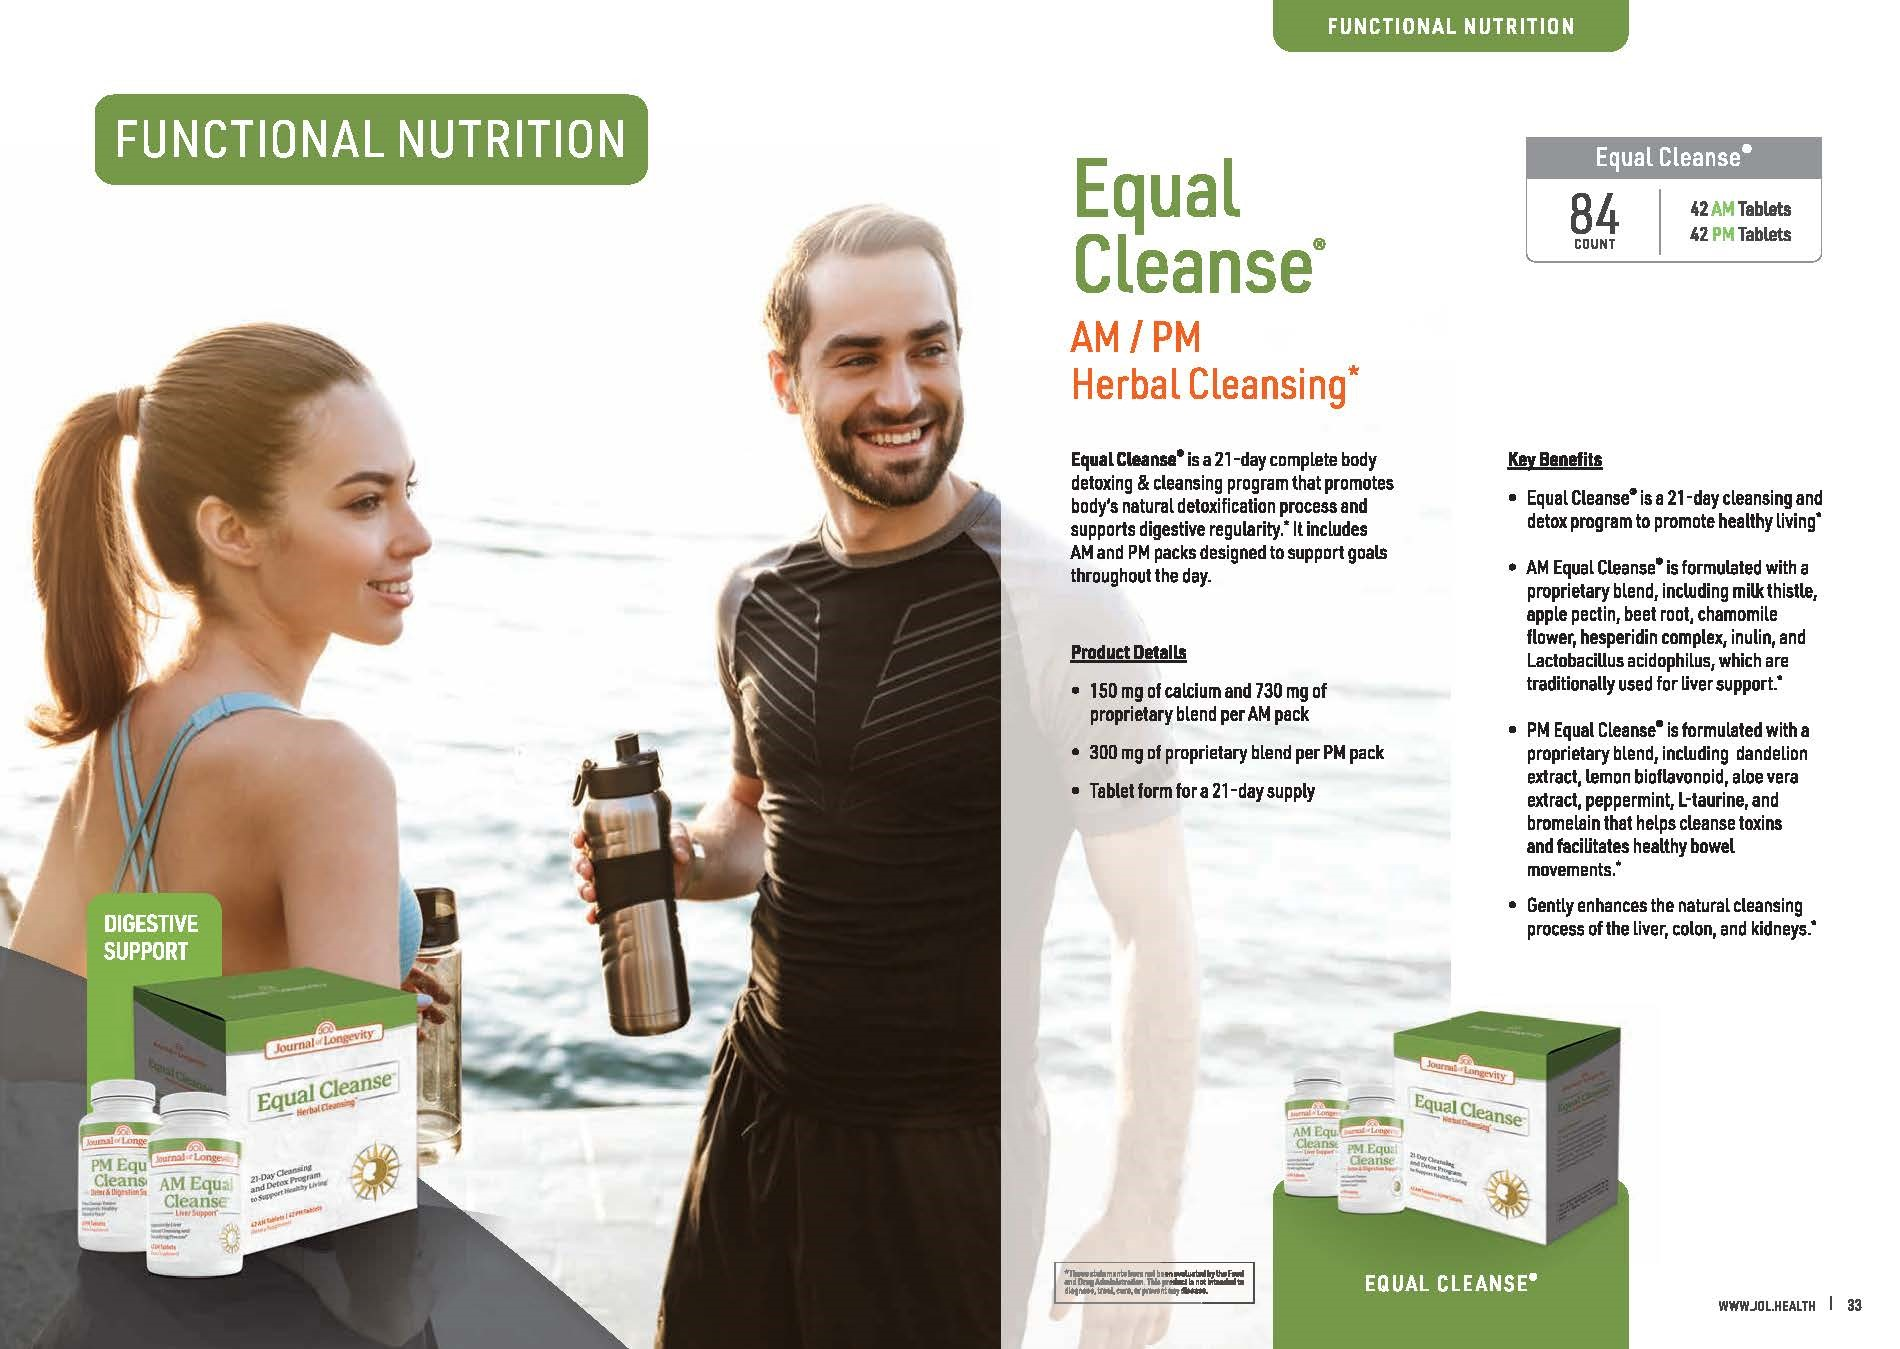 Journal of Longevity Equal Cleanse - Cleansing Detox For Digestion Support